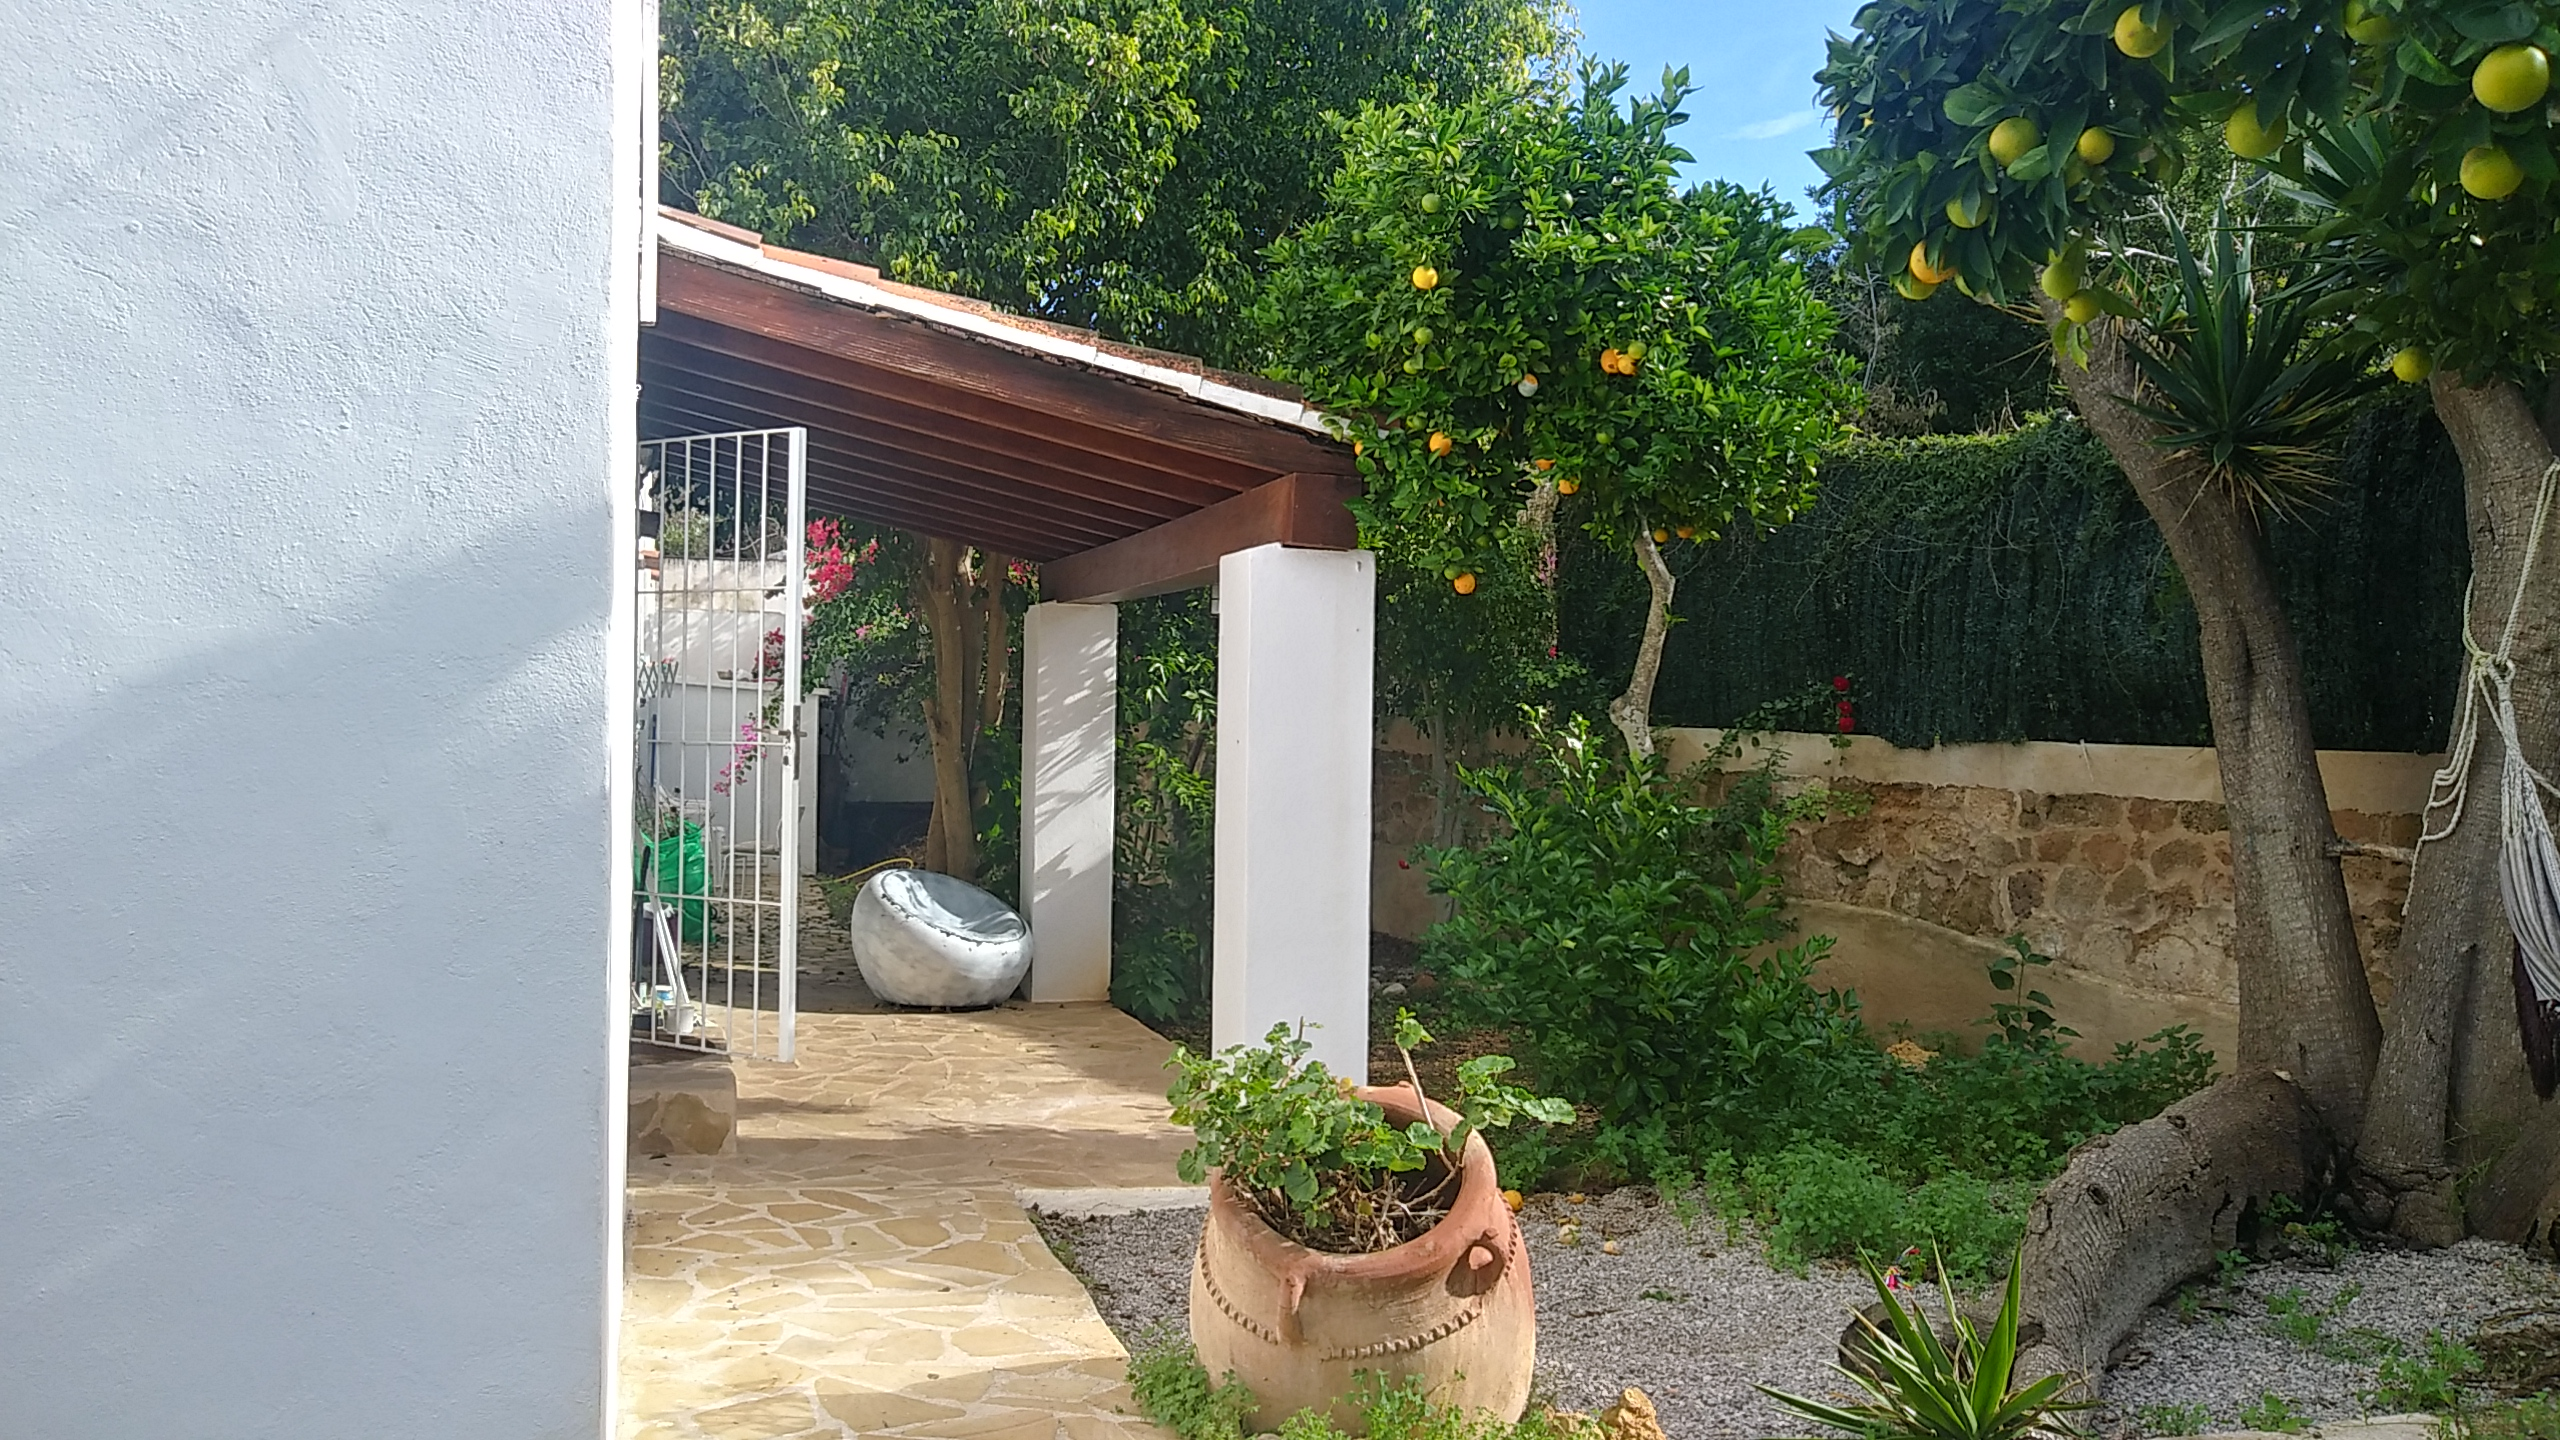 5 BEDROOM HOUSE IN THE AREA OF JESUS